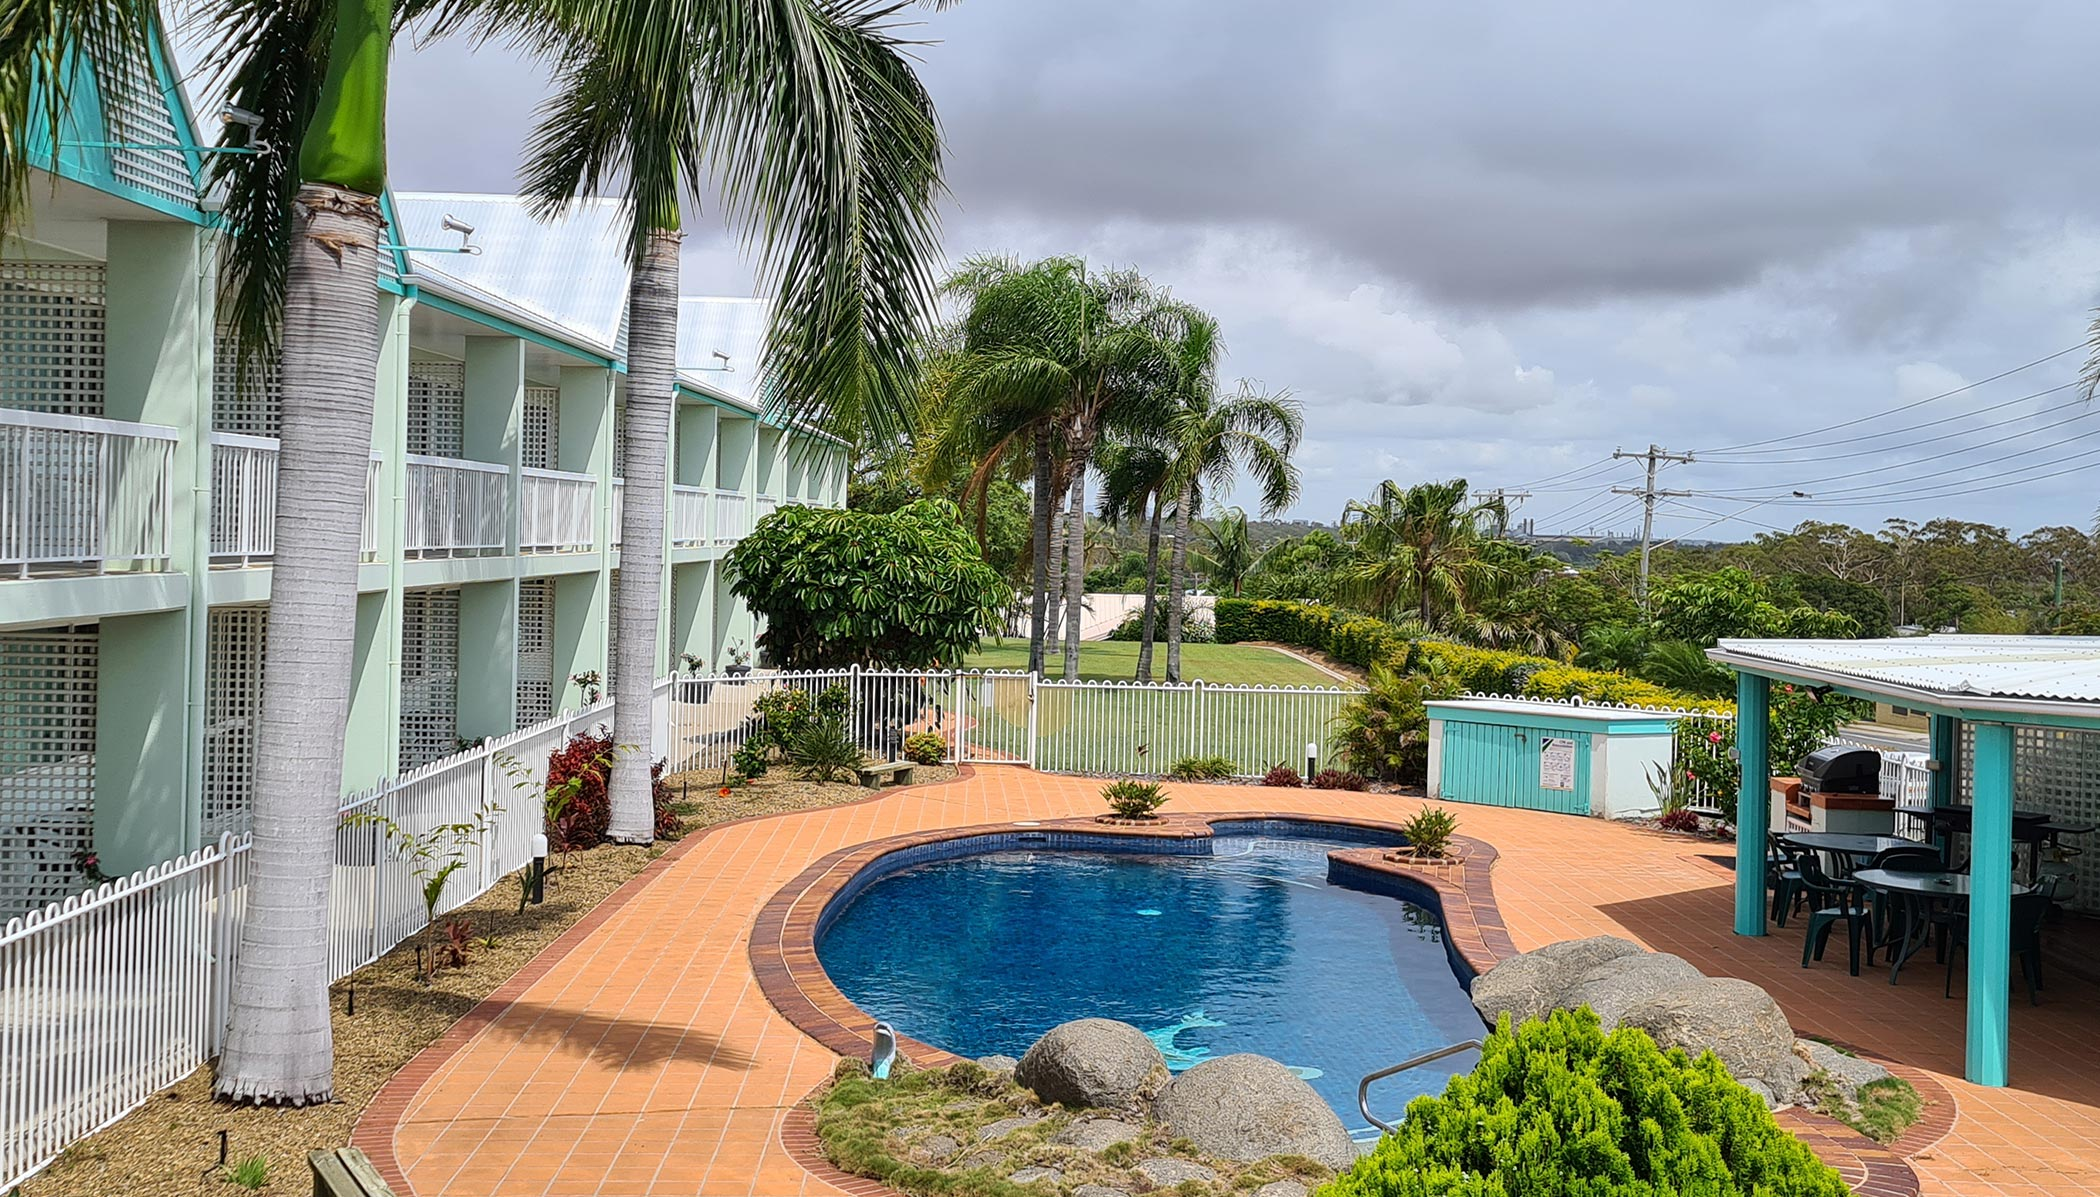 Elevated view of pool, BBQ area and double storey motel rooms with lush garden